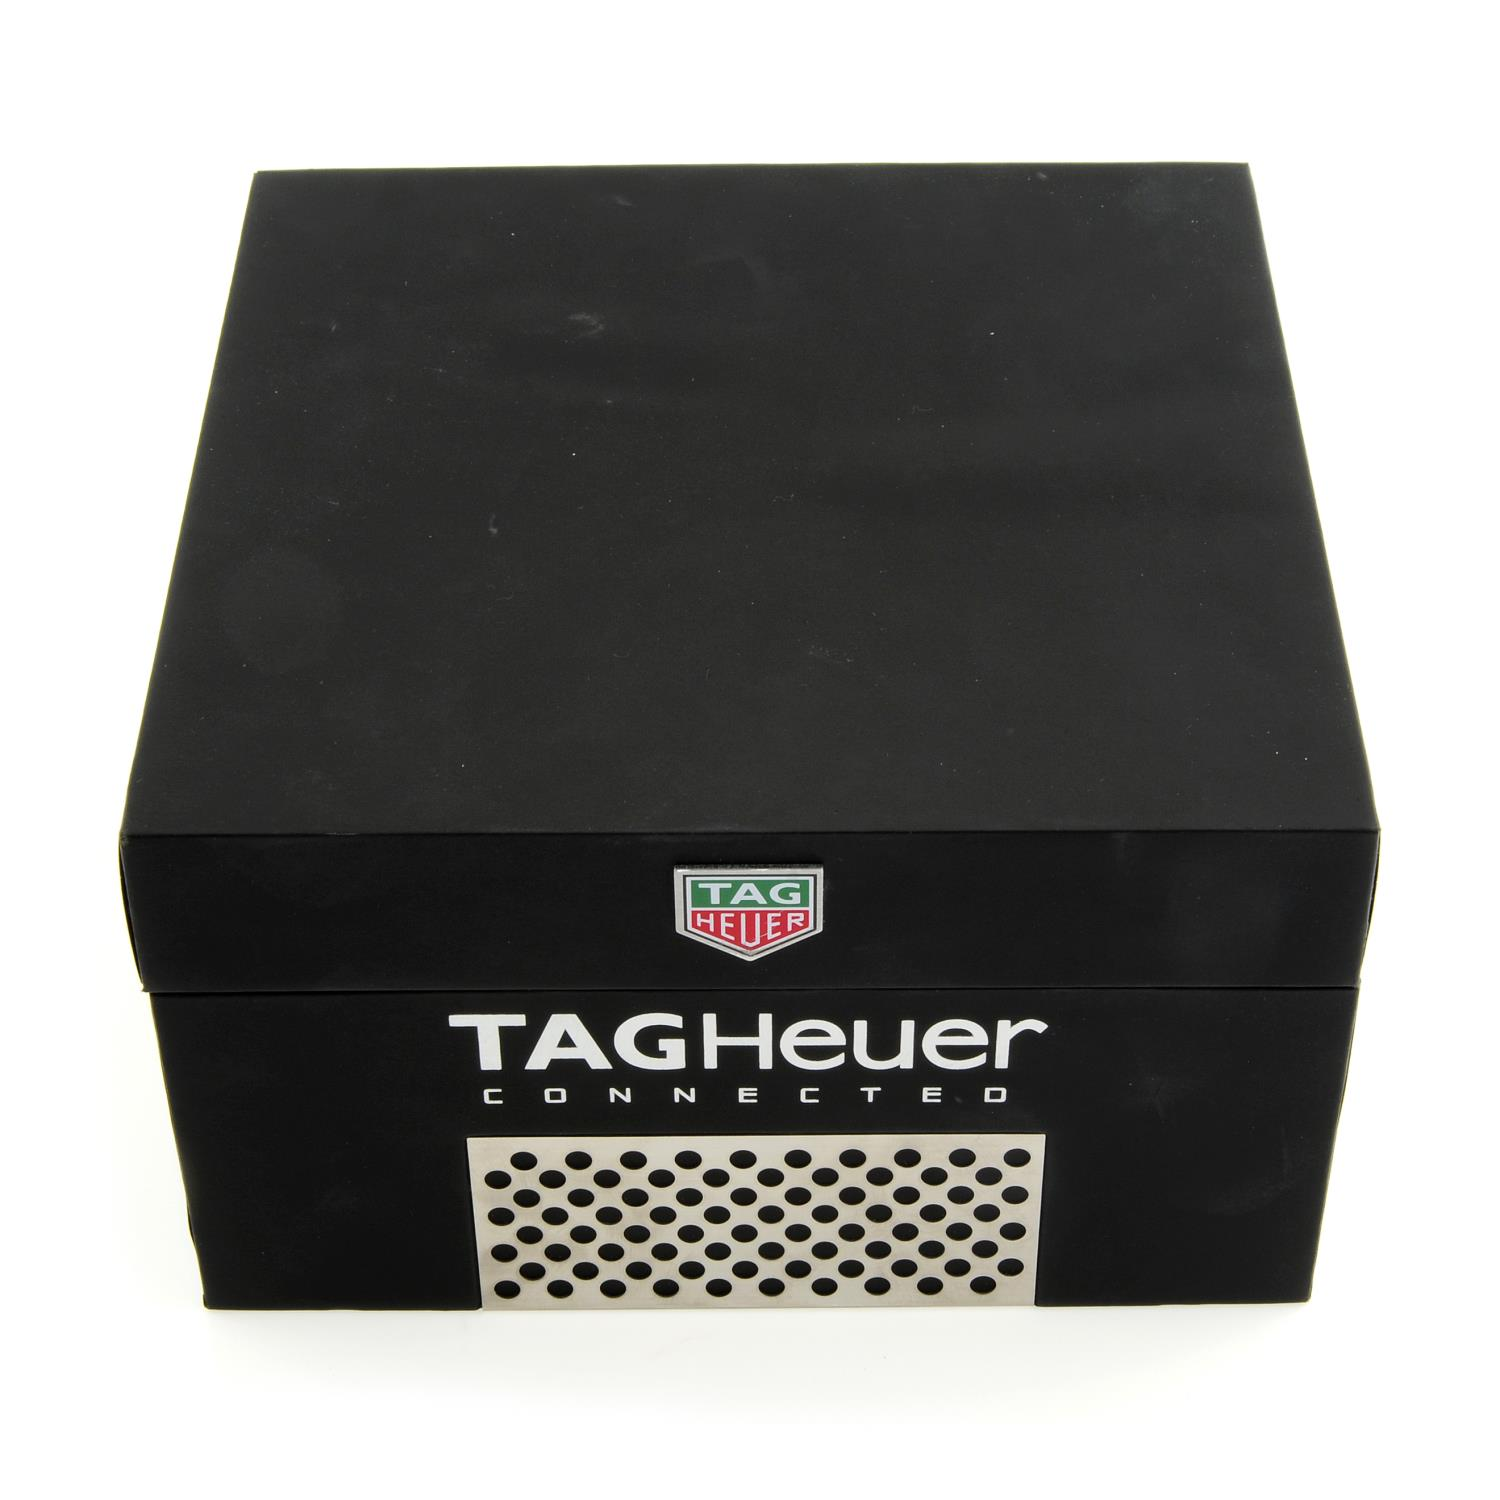 TAG HEUER - a Connected bracelet watch. - Image 4 of 6